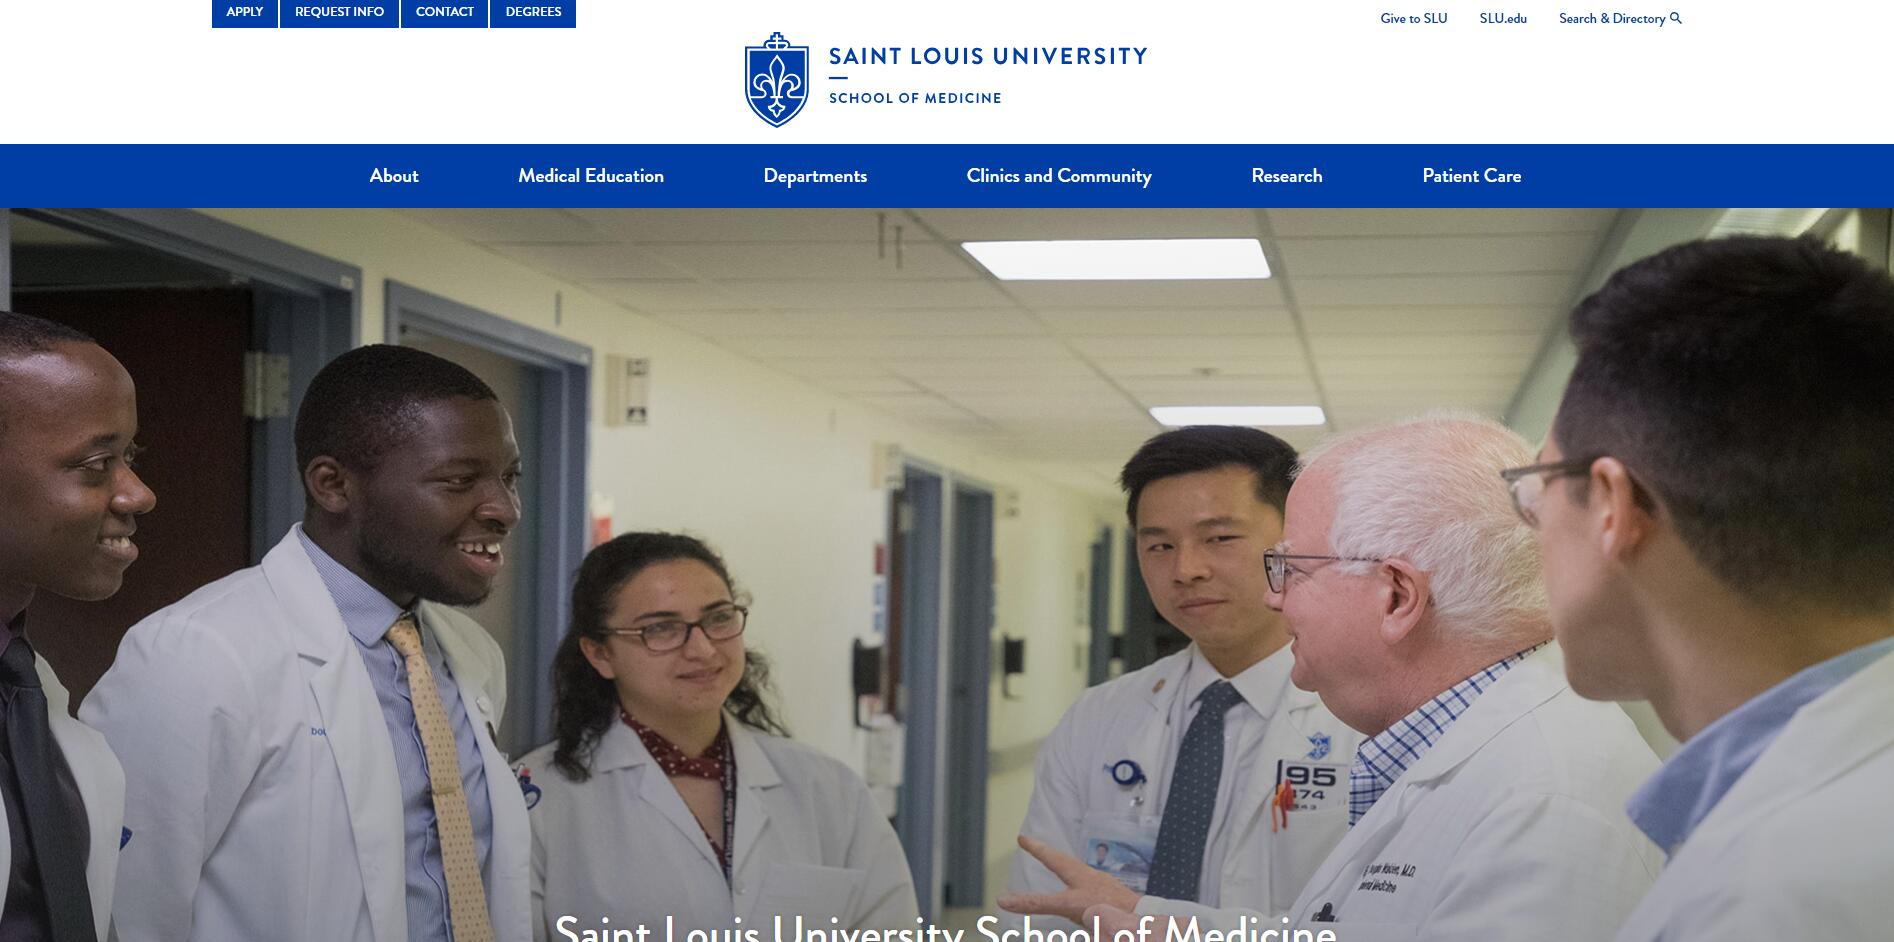 The School of Medicine at St. Louis University